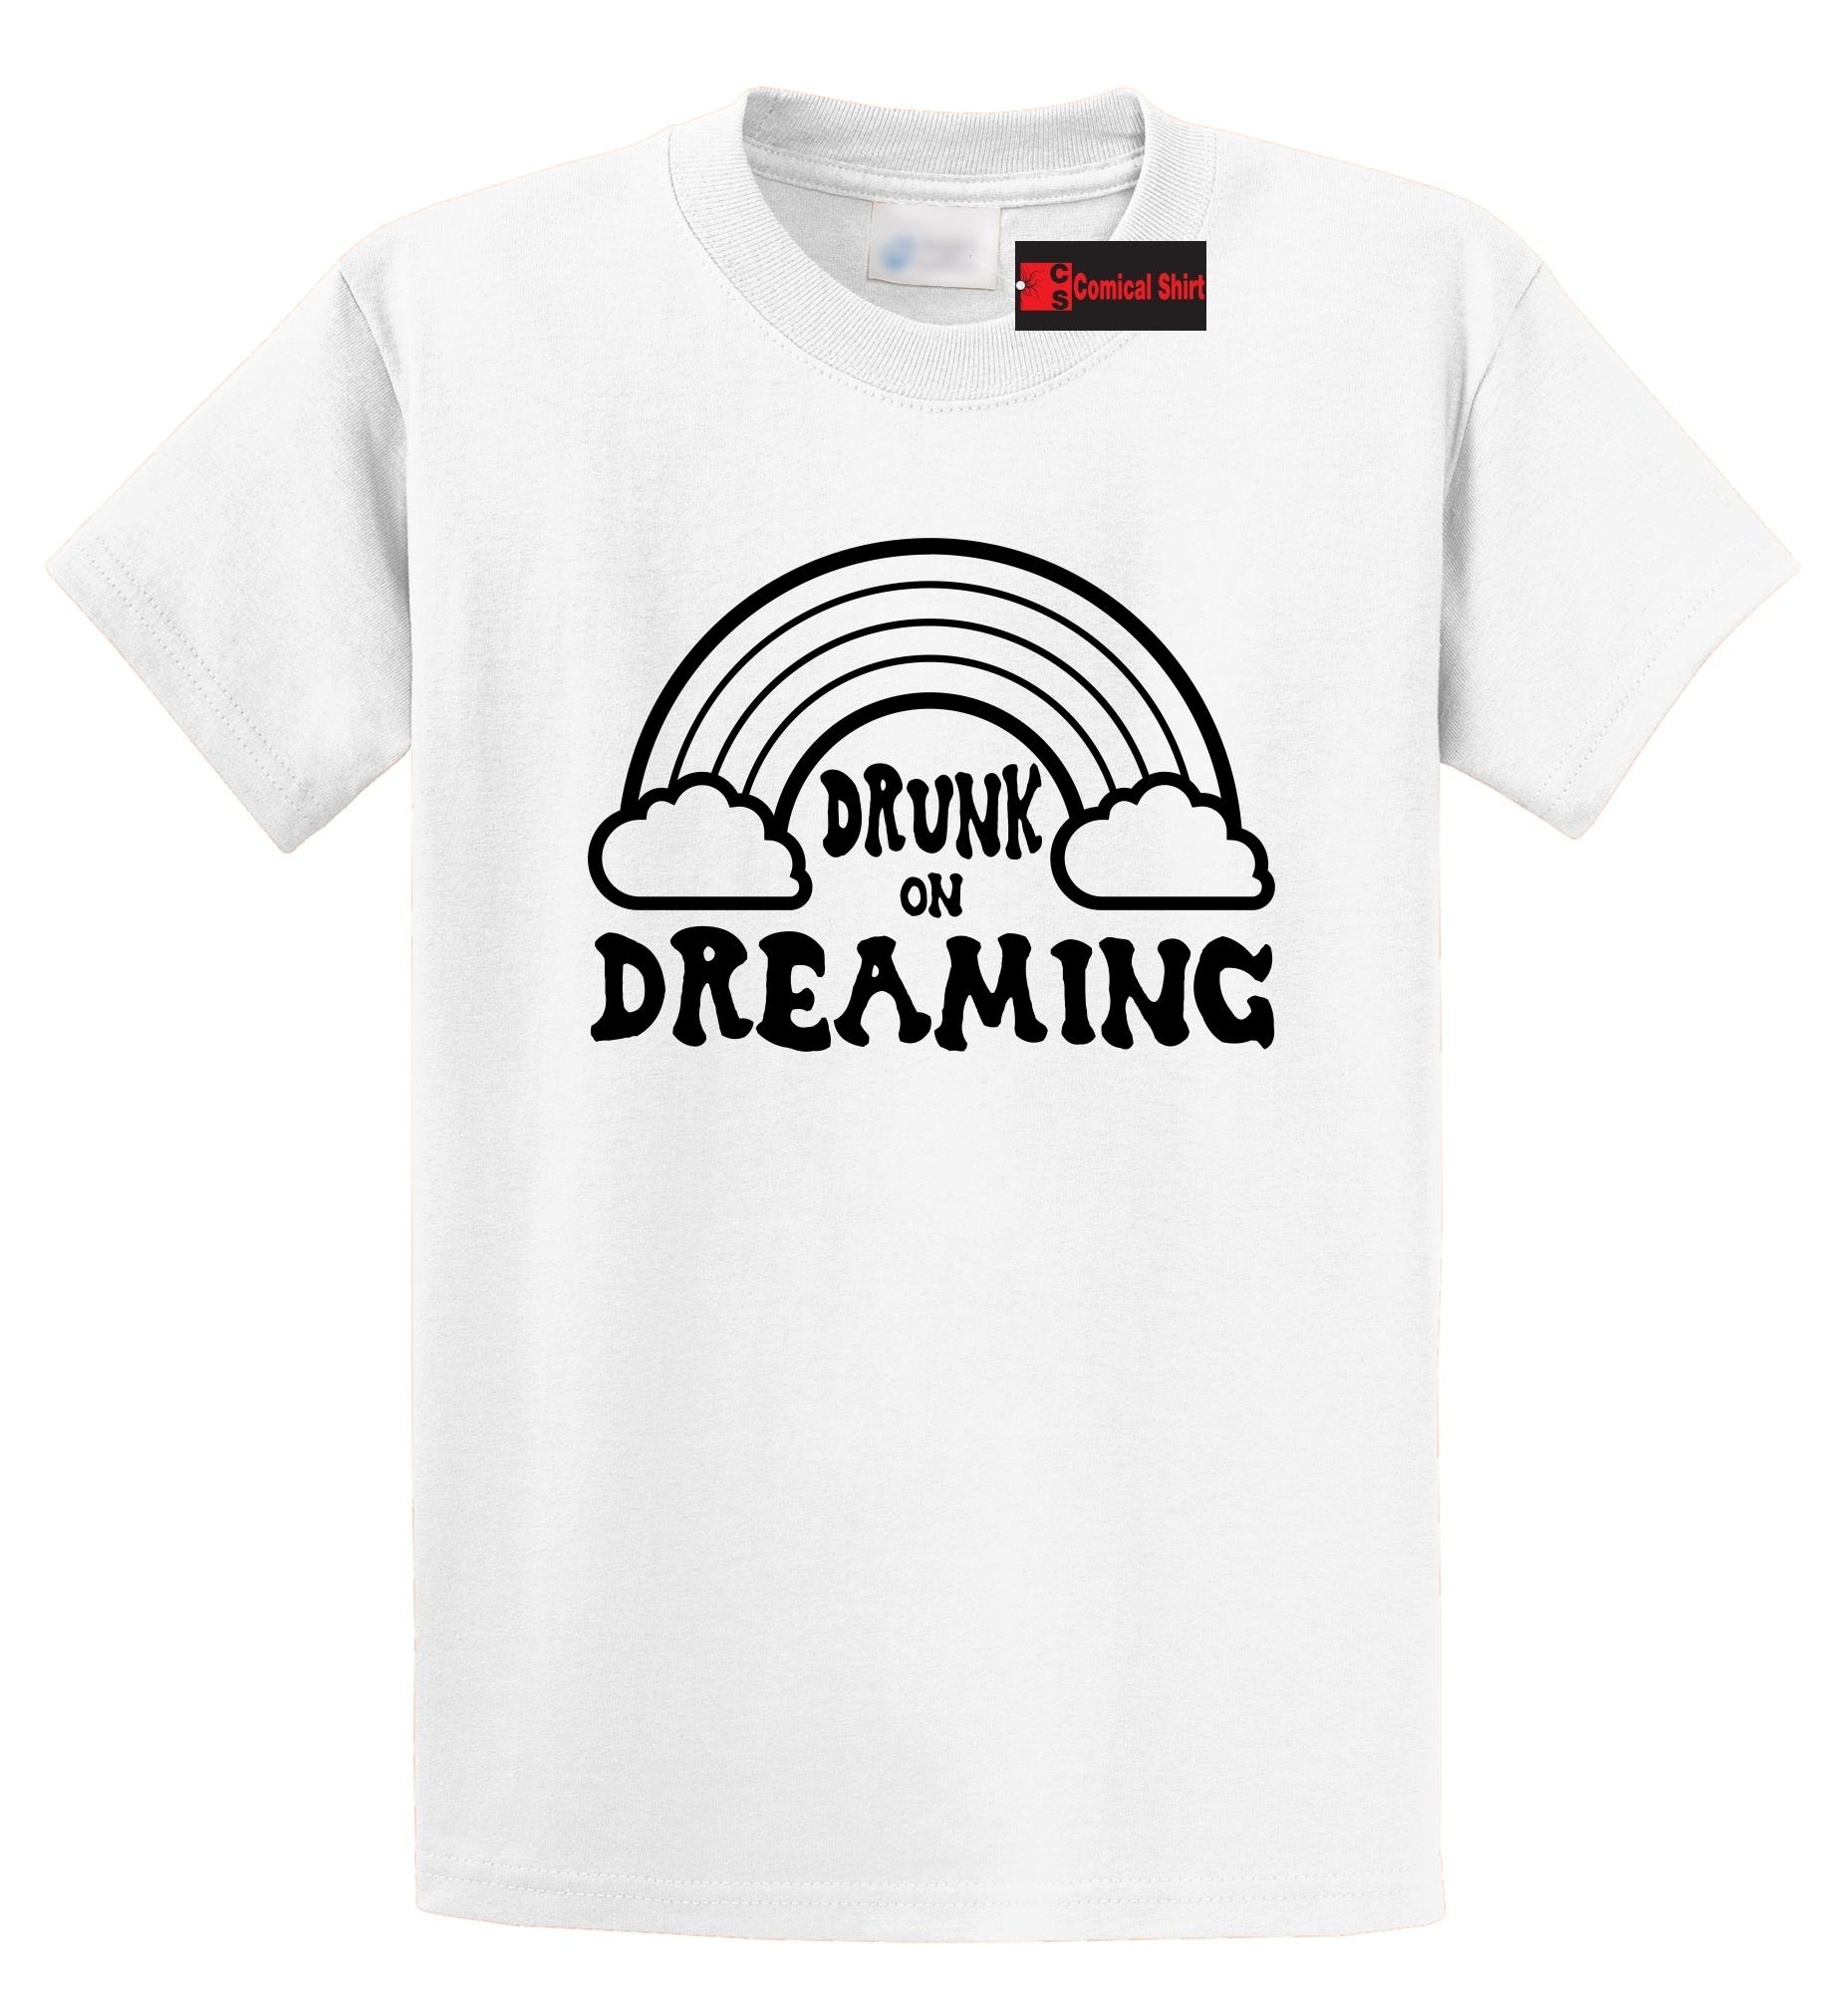 954a1c51f Drunk On Dreaming T Shirt Cute Graphic Tee Inspirational Motivational Tee S  5XL O Neck T Shirt Harajuku Tops Tees Coolest T Shirts Online Buy Shirt  Designs ...